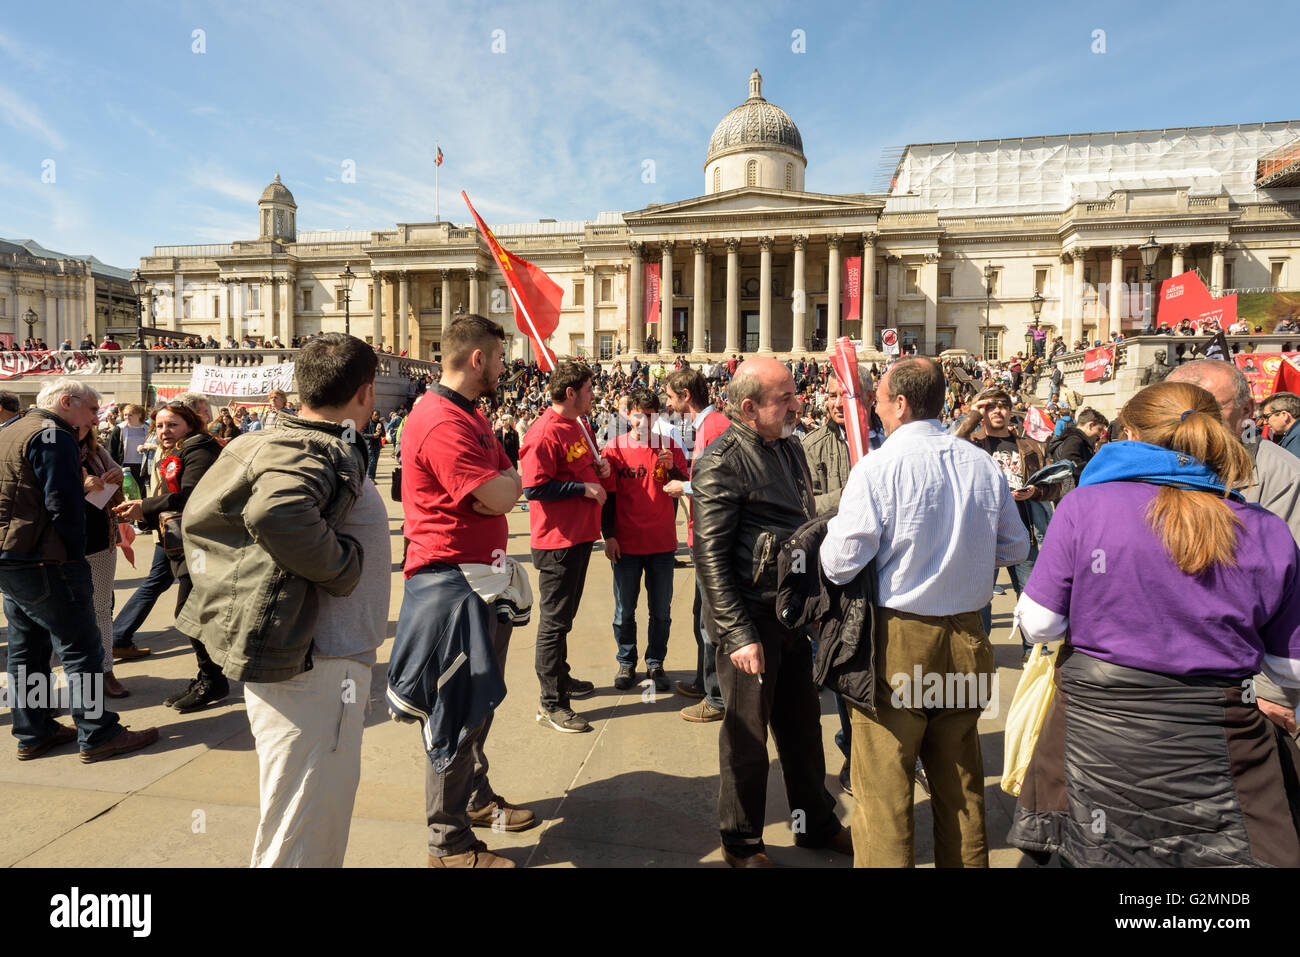 Workers and trade unions activists at the London May Day rally in Trafalgar Square London May 1st - Stock Image